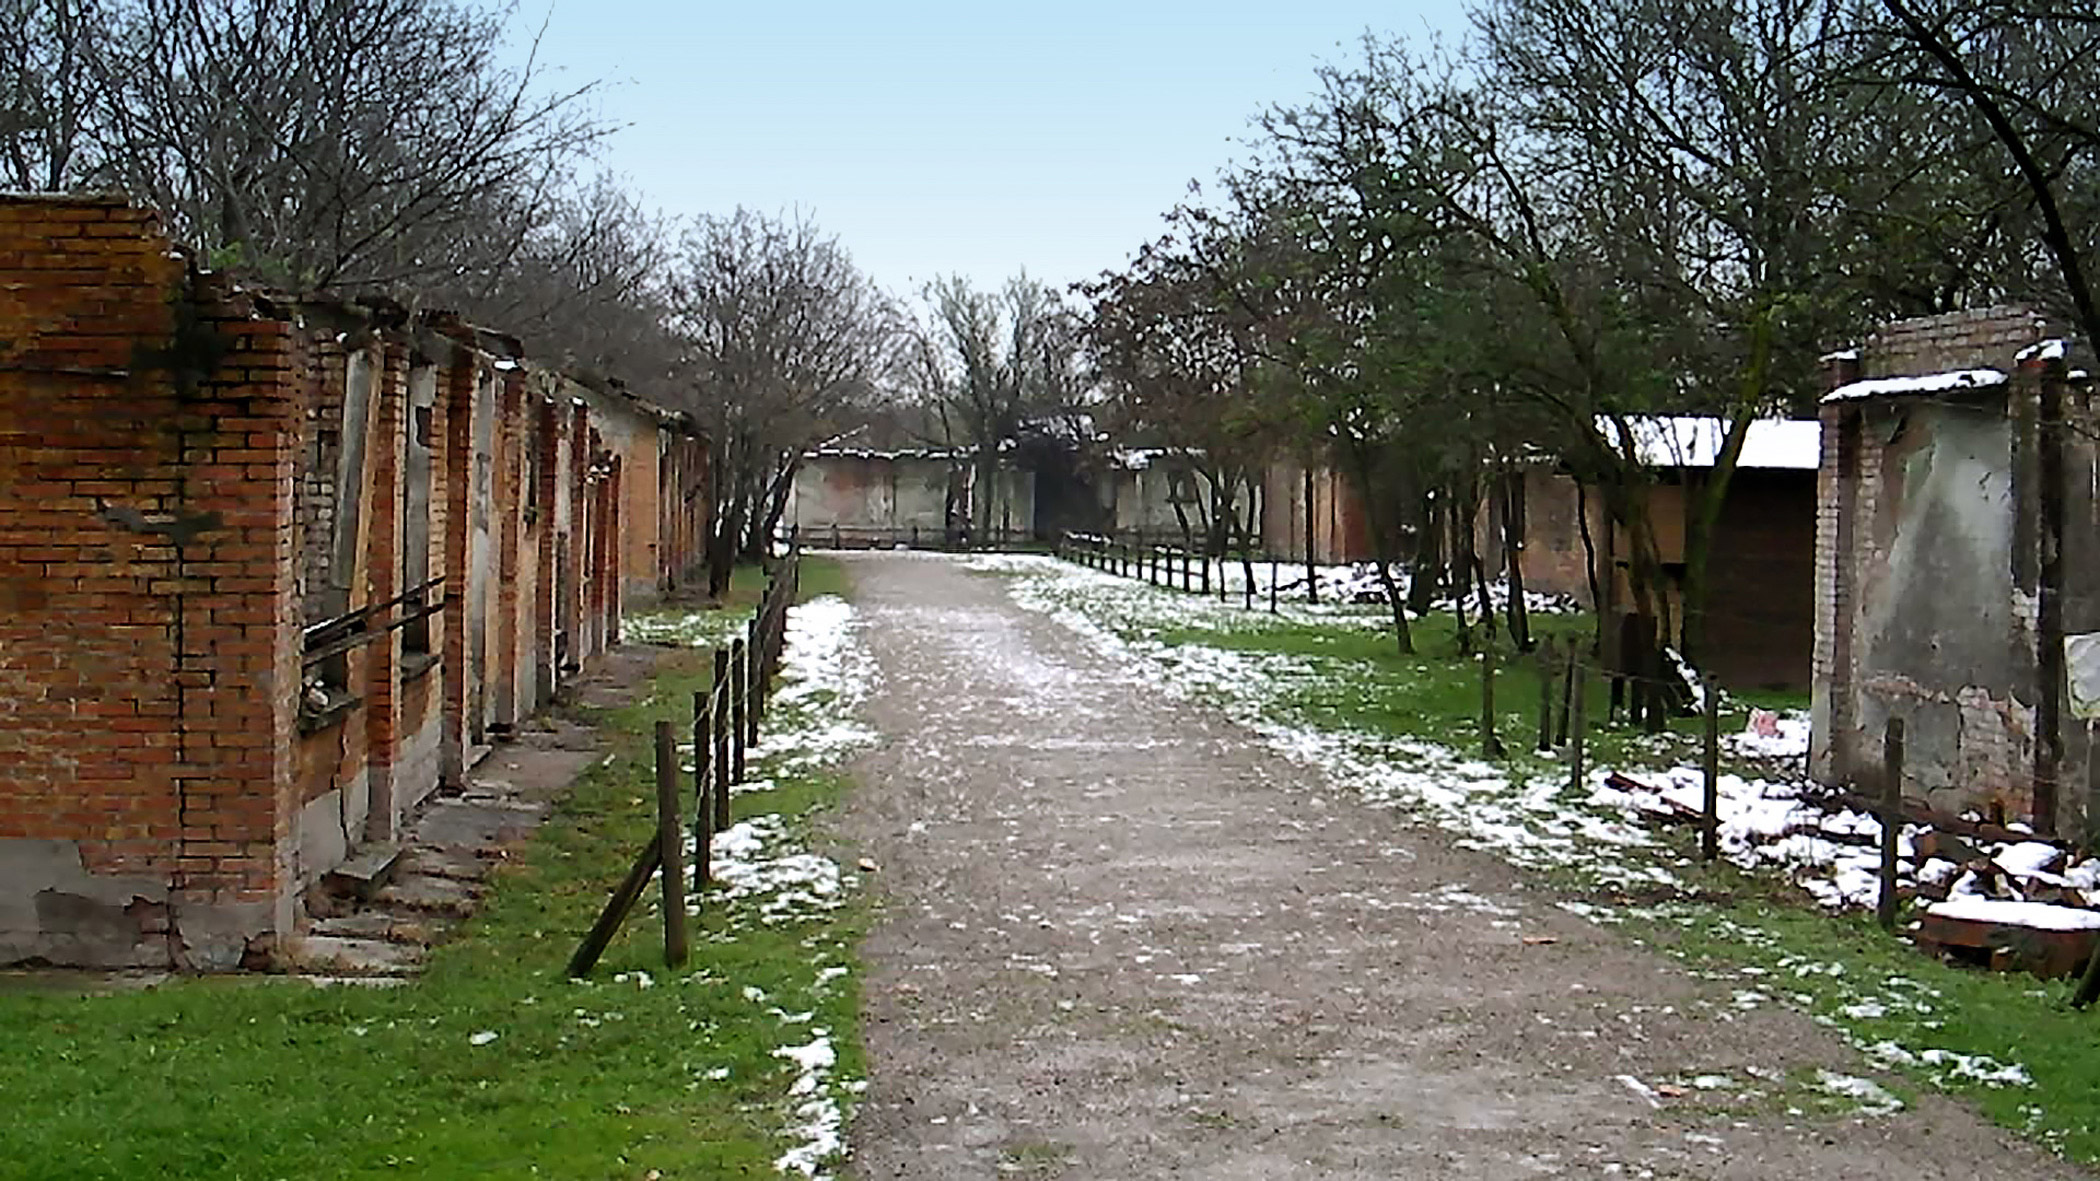 Italy, World War II                               Concentration Camps: The neglect and destruction of the remaining concentration camps built in Italy during WWII is largely due to the denial of this almost-forgotten chapter of Italy's recent past.